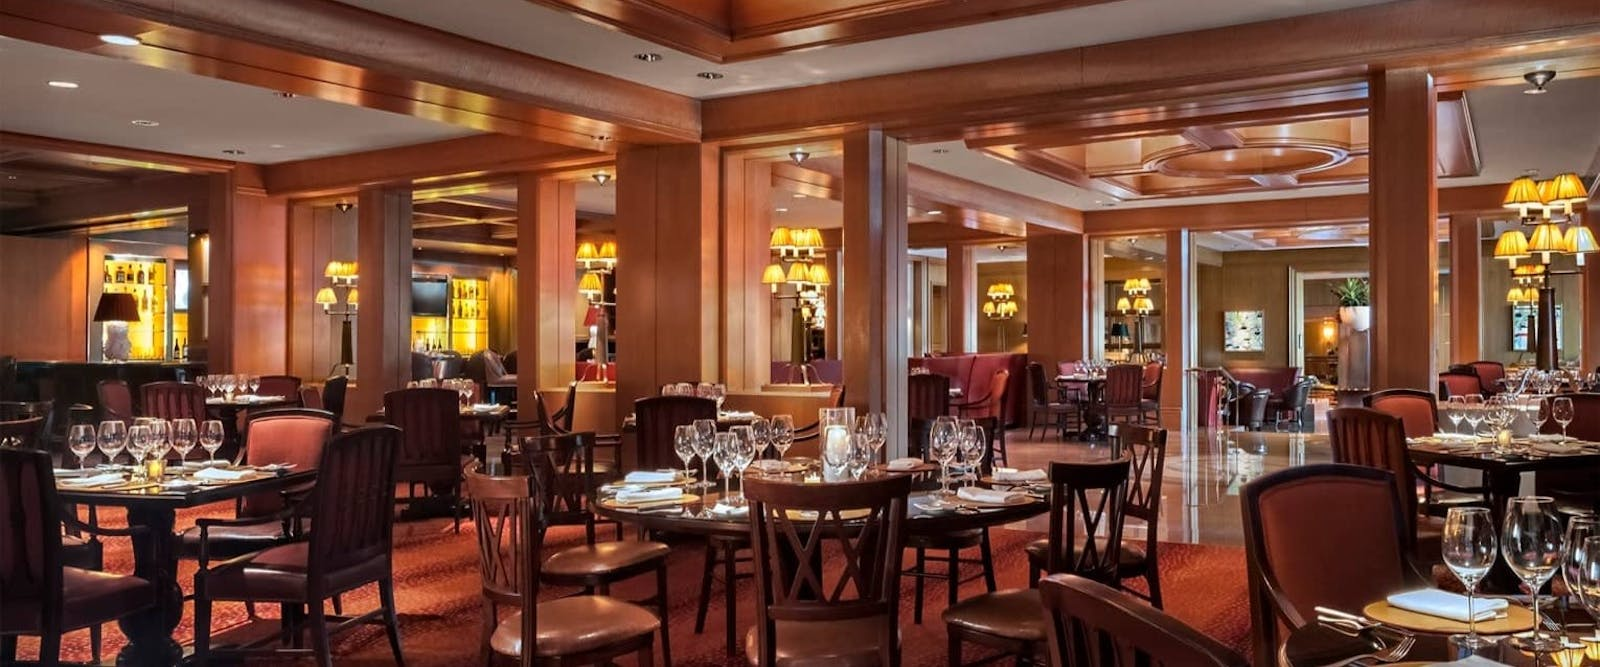 The Bristol Restaurant at Four Seasons Hotel Boston, New England